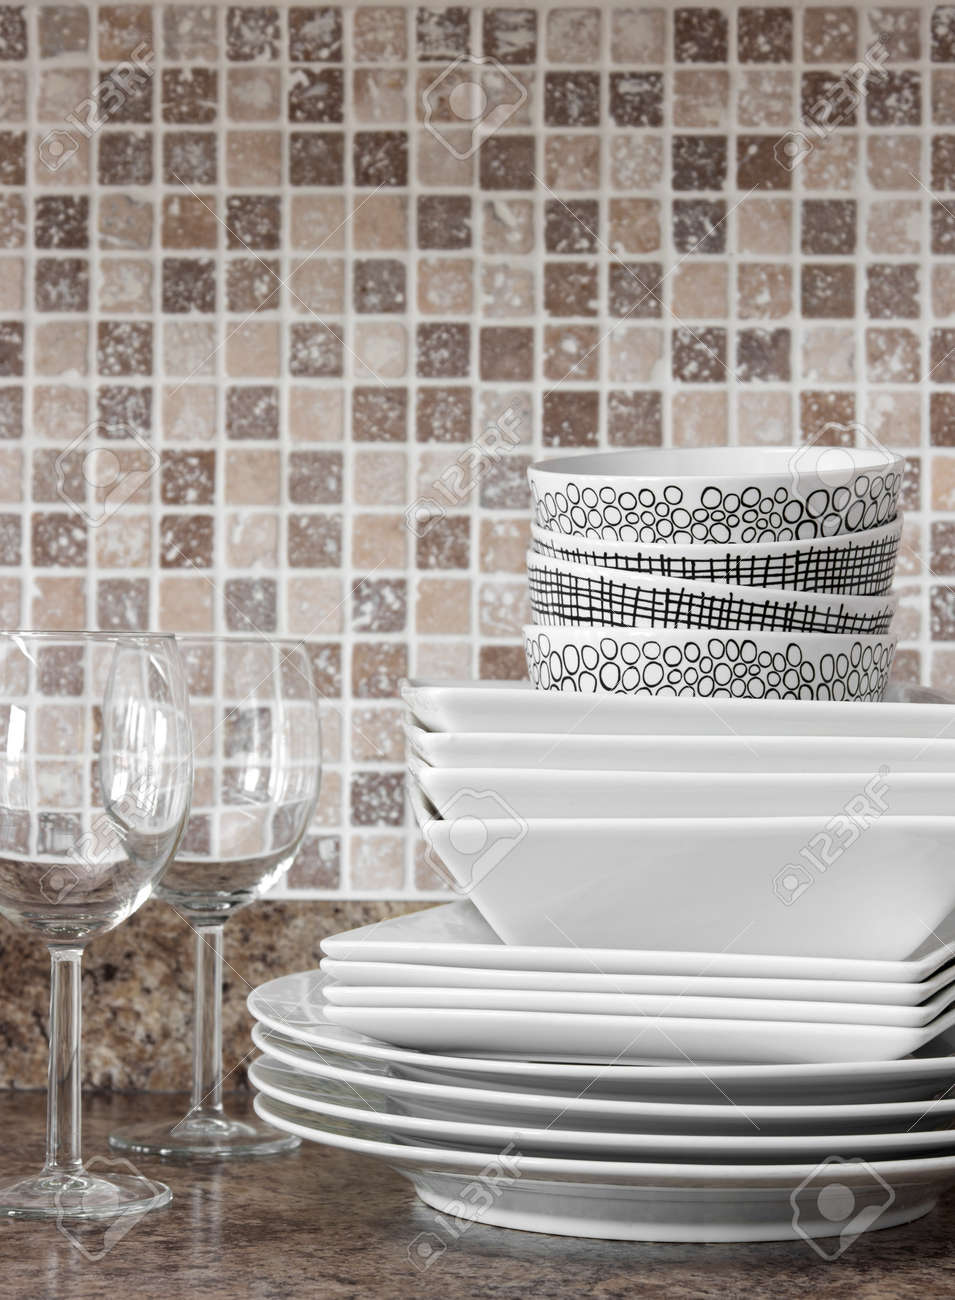 White dishes, plates and wineglasses on kitchen countertop Stock Photo - 17045044